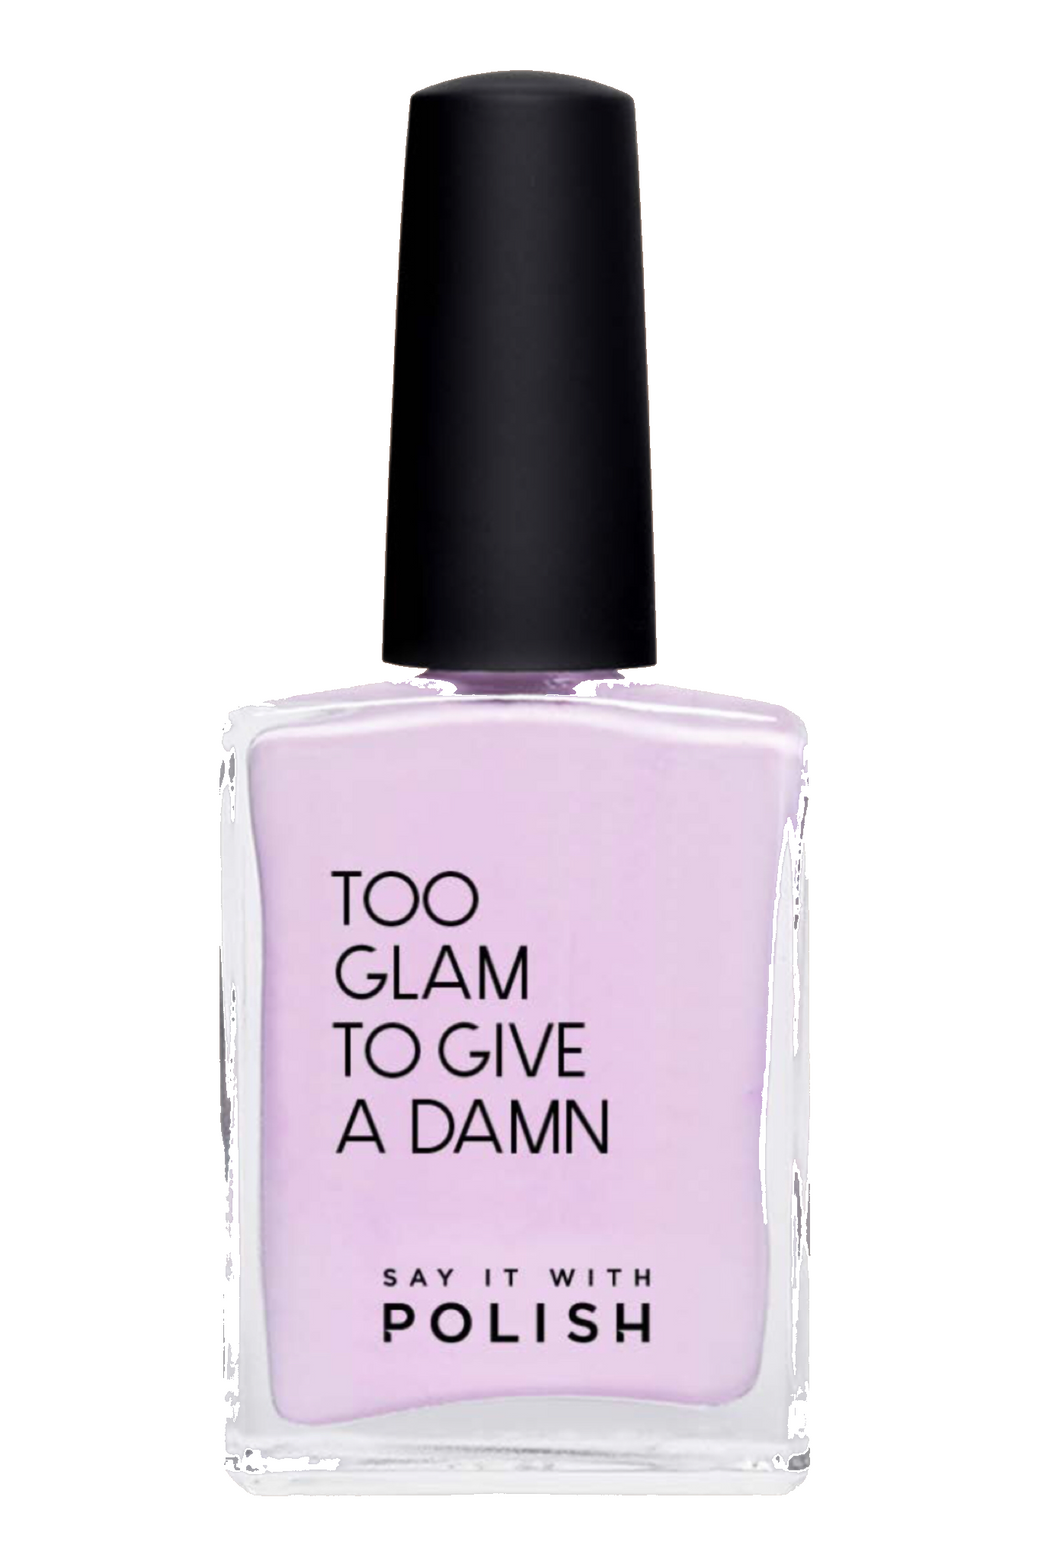 Say It With Polish - Too Glam To Give A Damn - Leo loves Coco